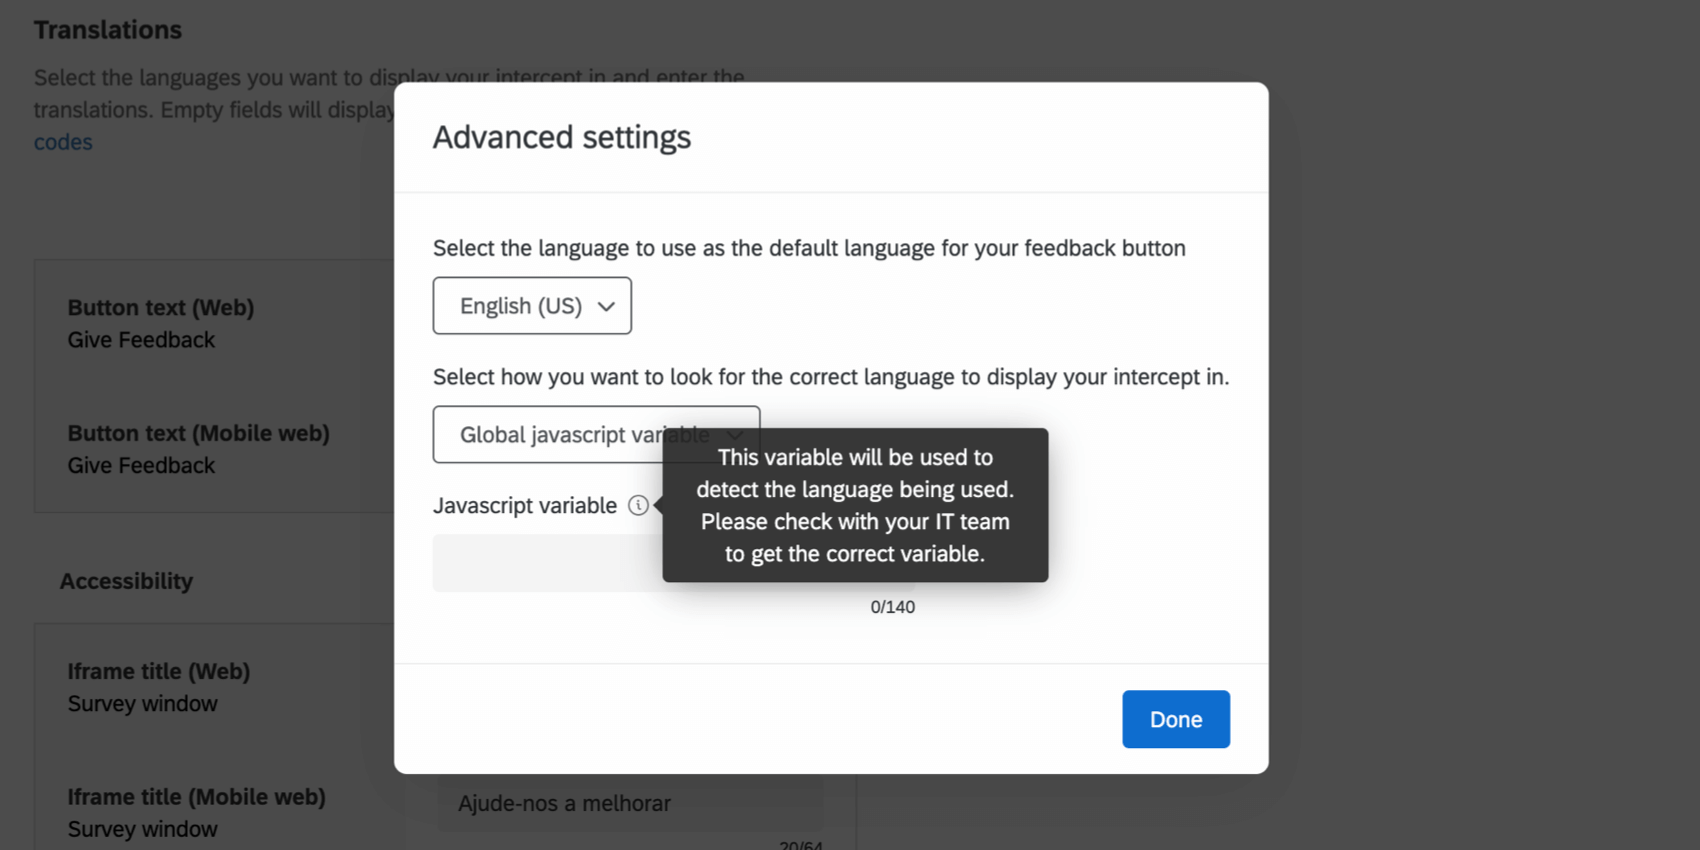 Using a Javascript variable in the Advanced settings